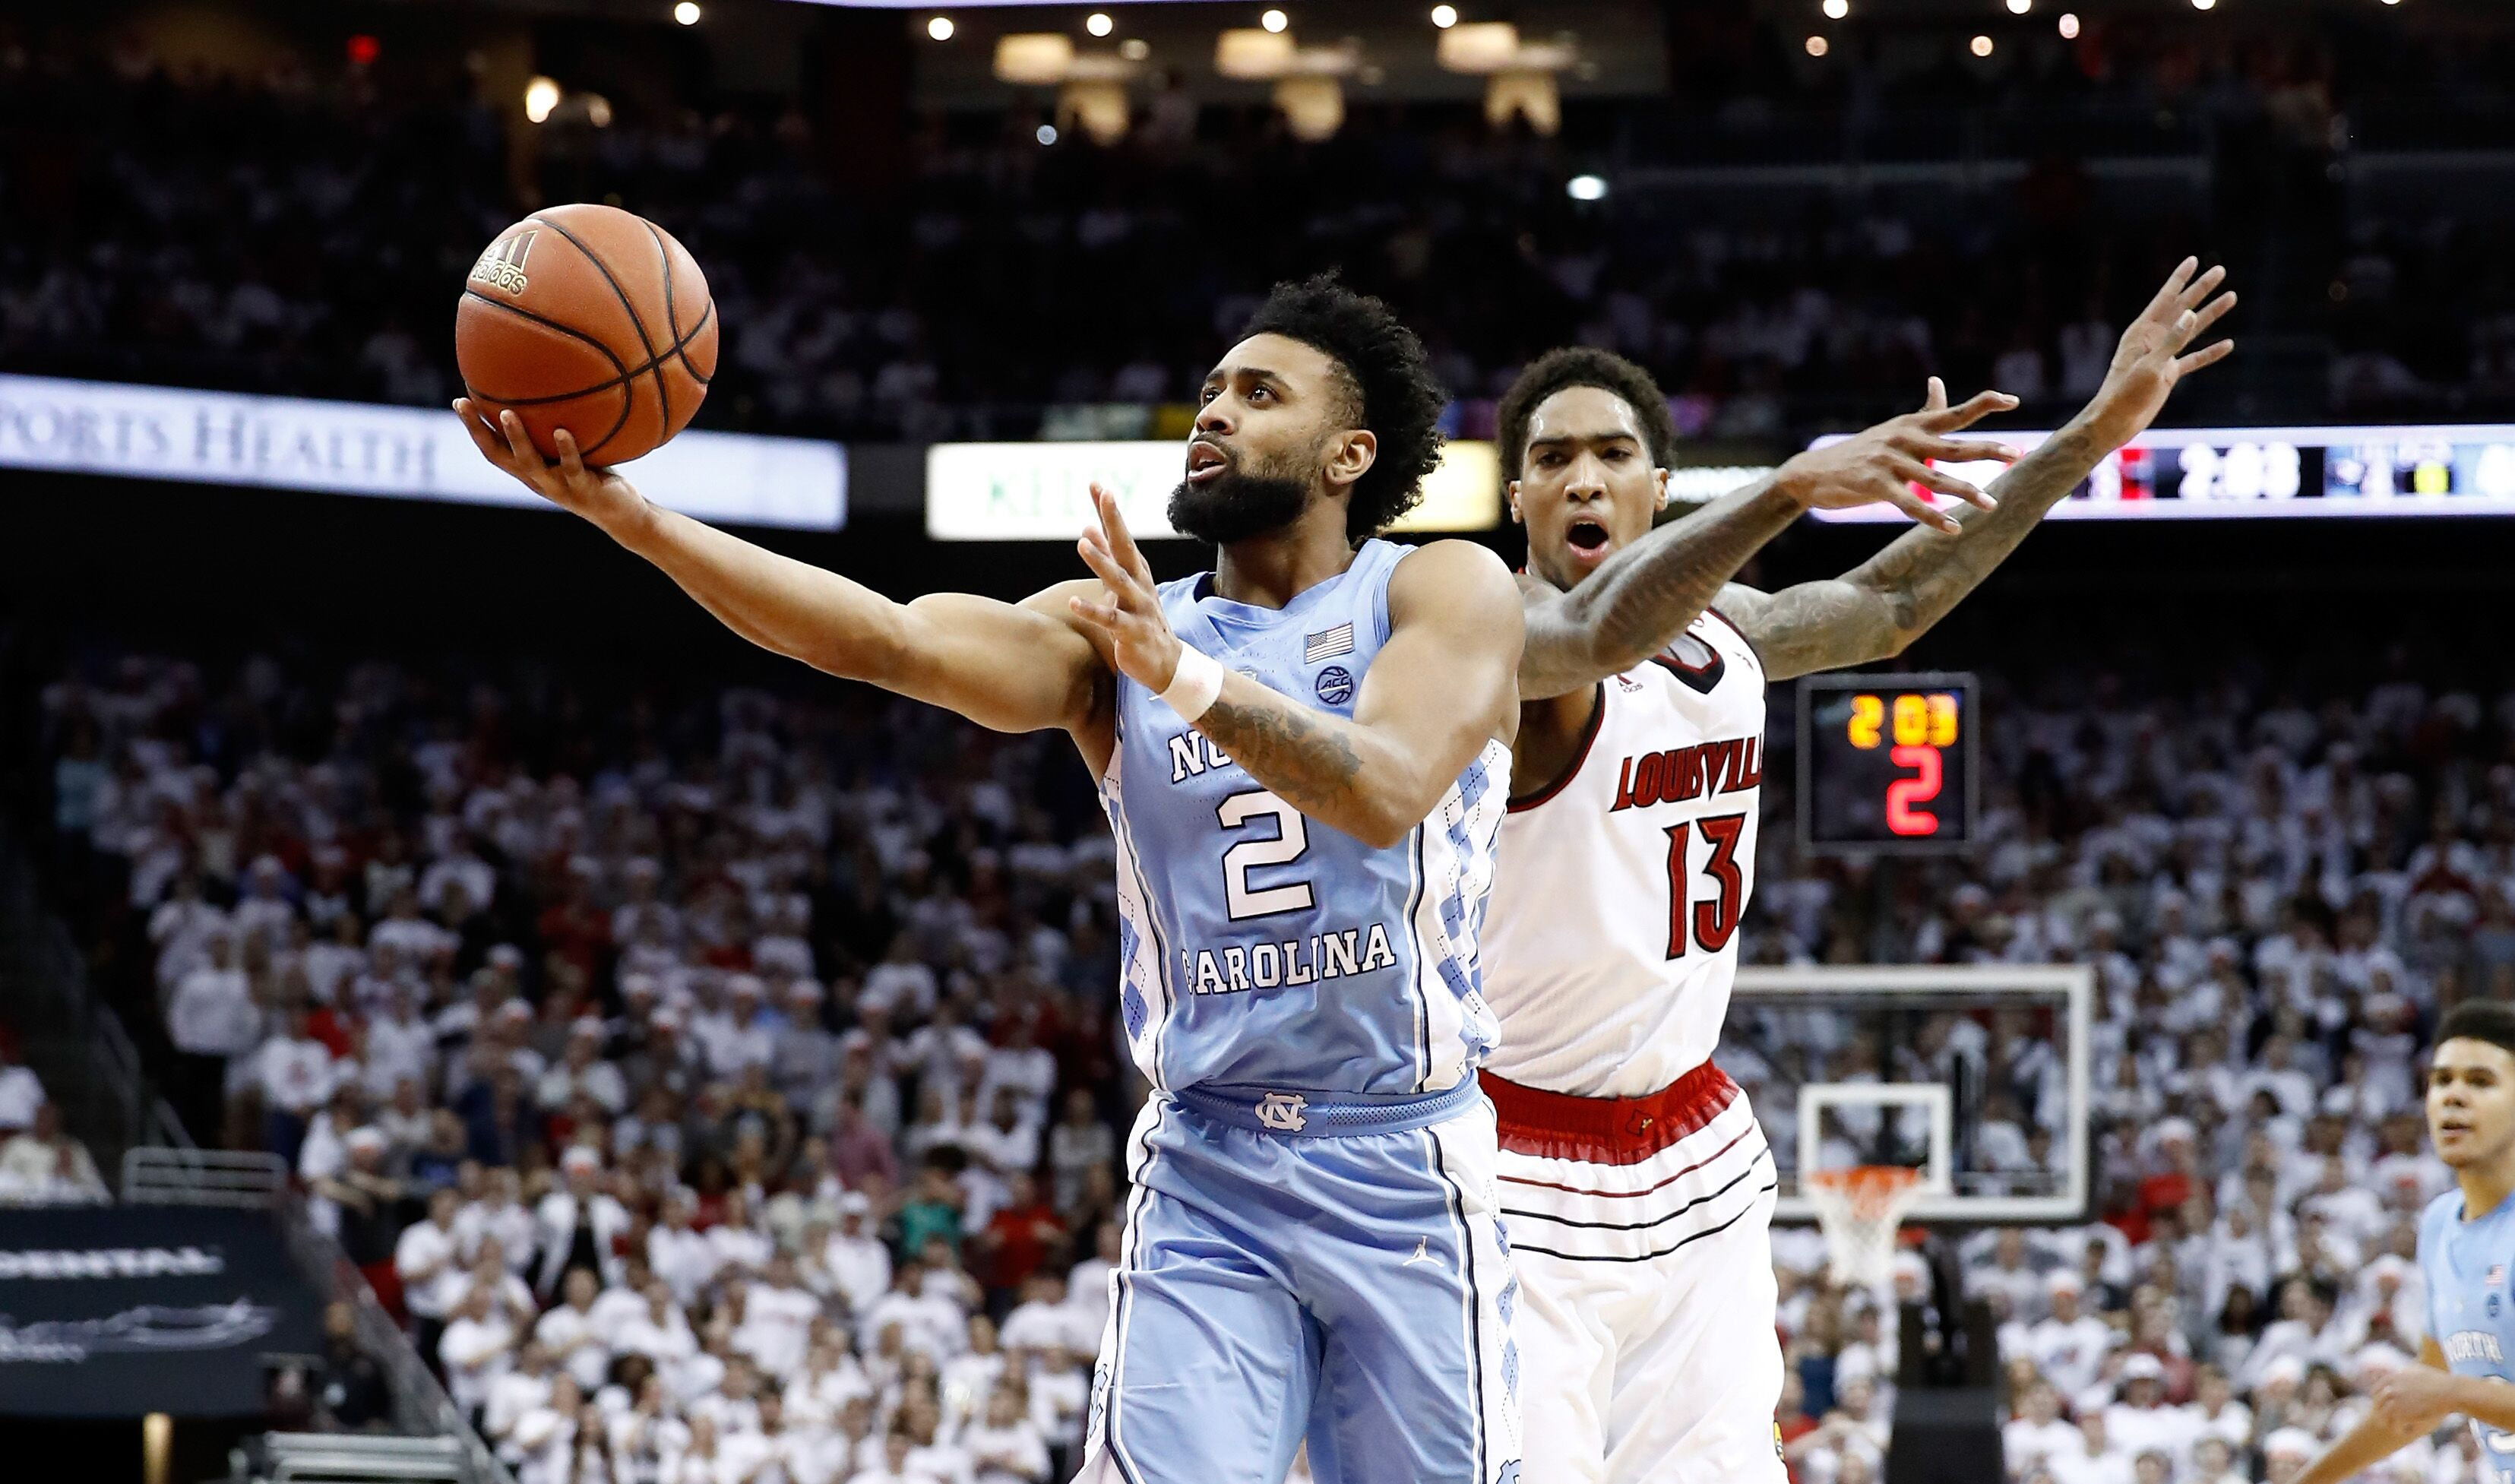 UNC Basketball: Tar Heels control pace in win over Cardinals